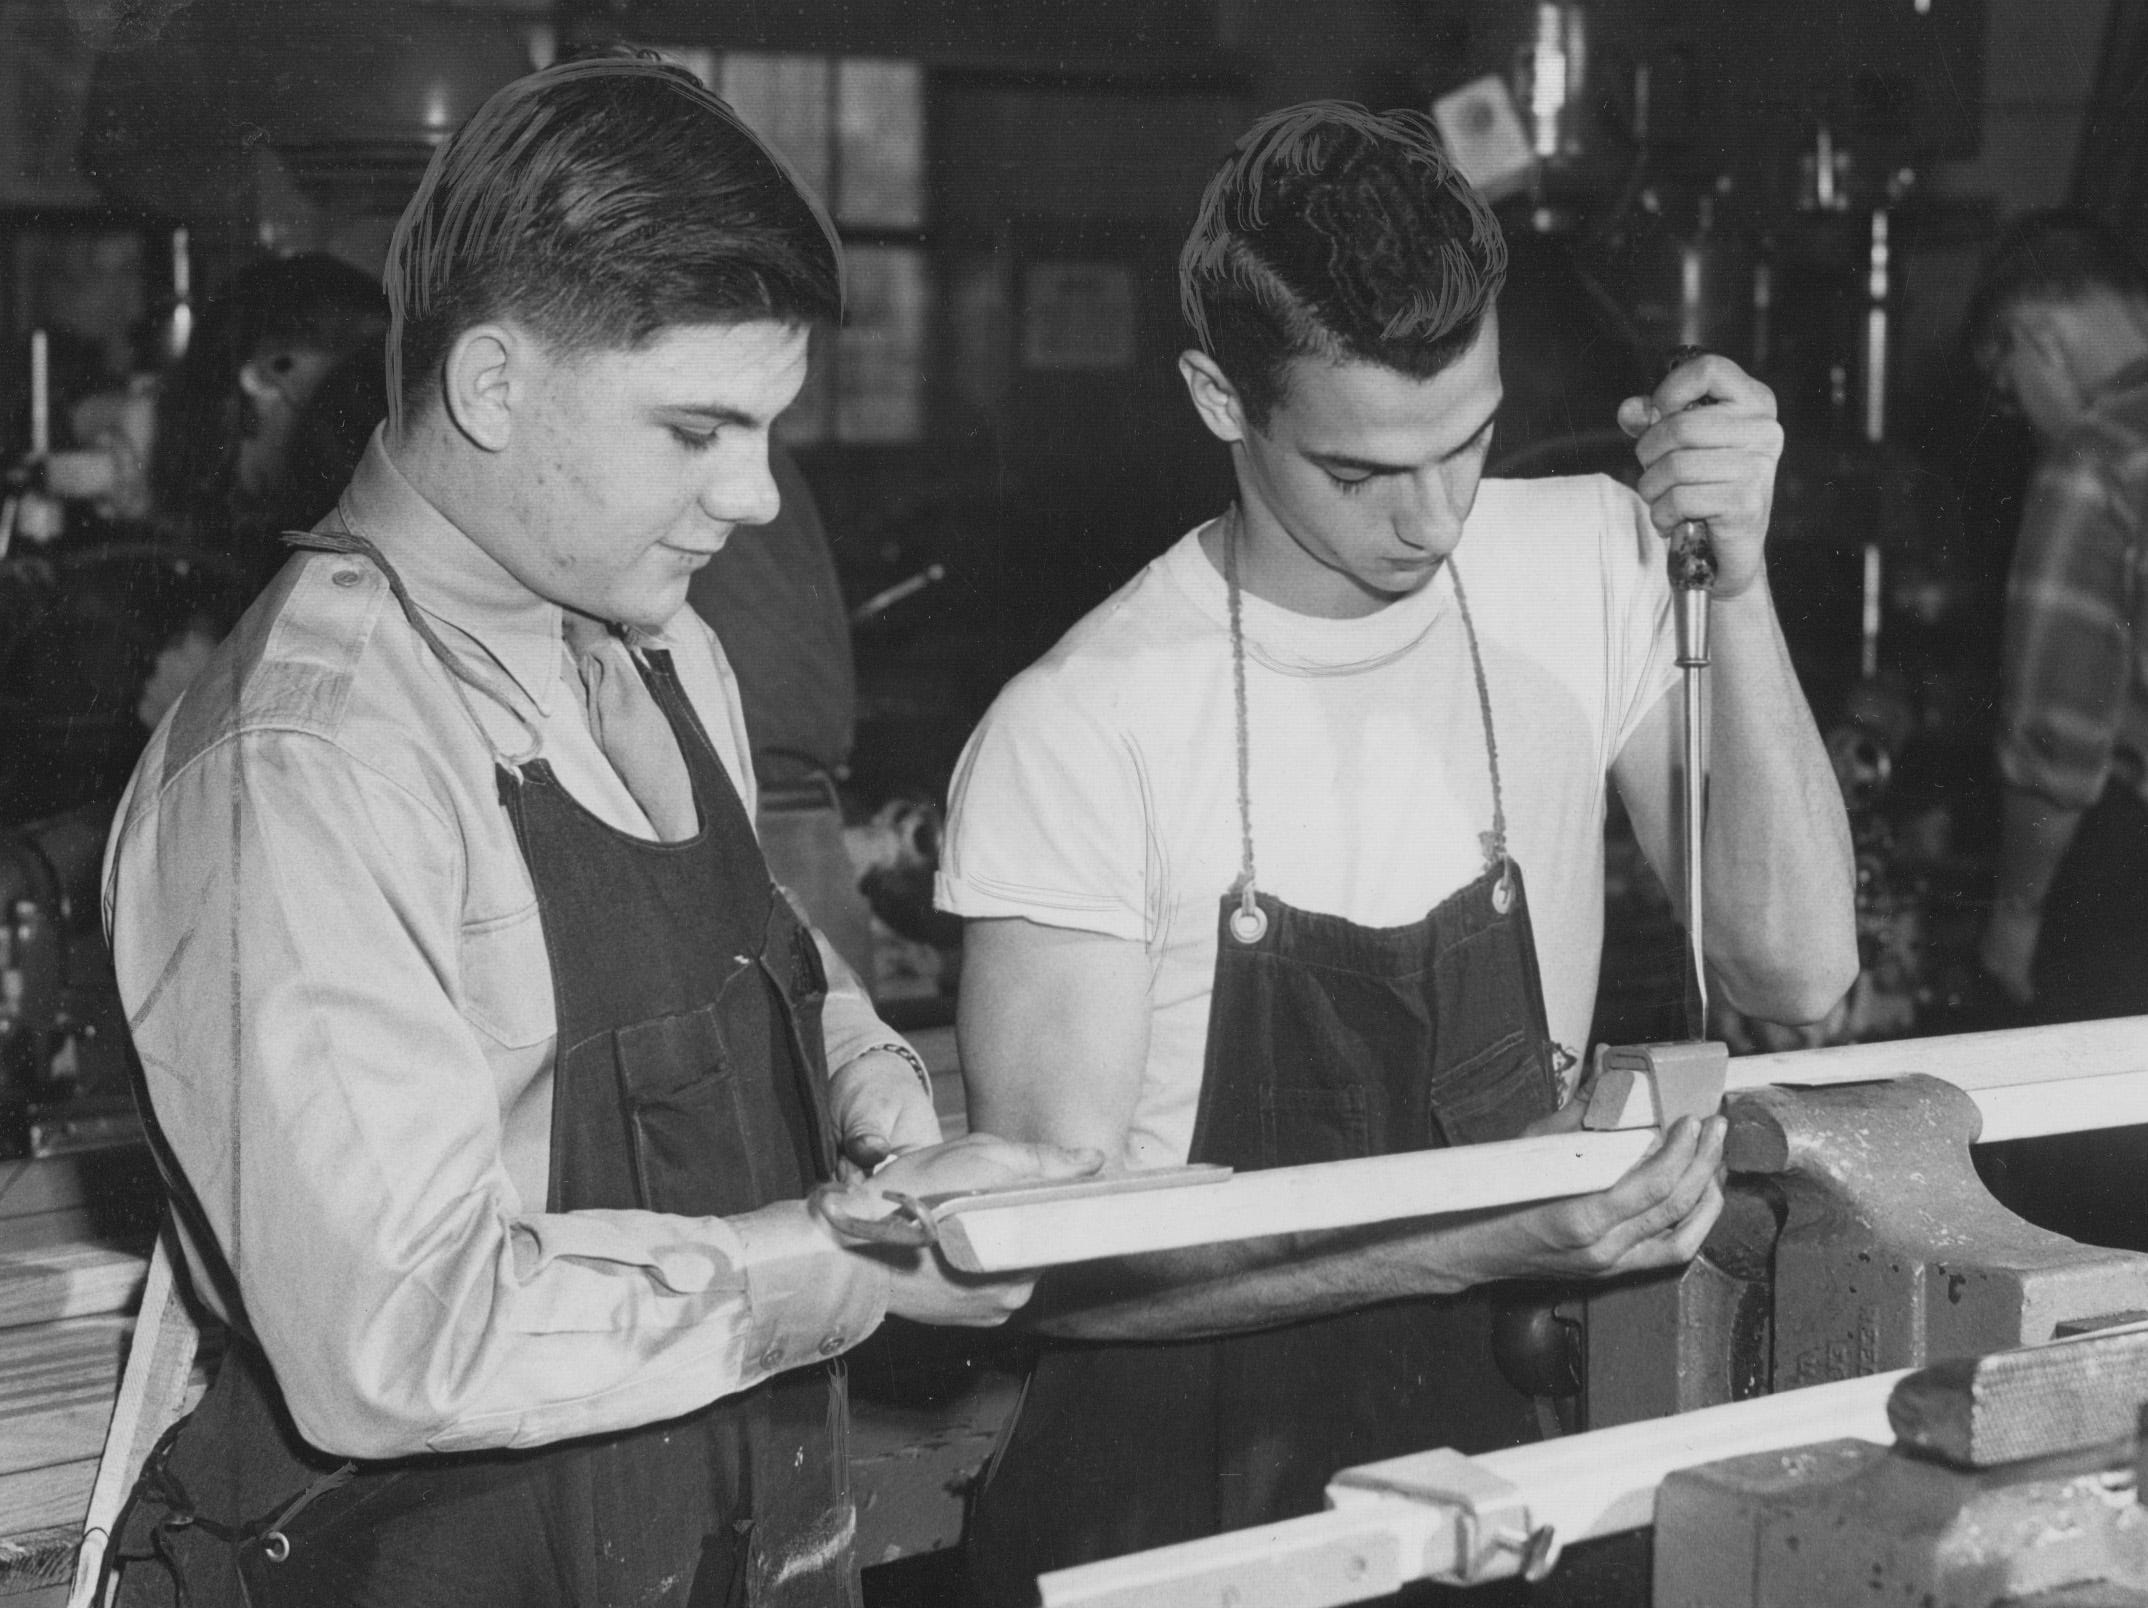 Richard Horner (left) and Floyd Wiggs work in the wood and machine shop at George Washington high School on new stage braces in 1955.